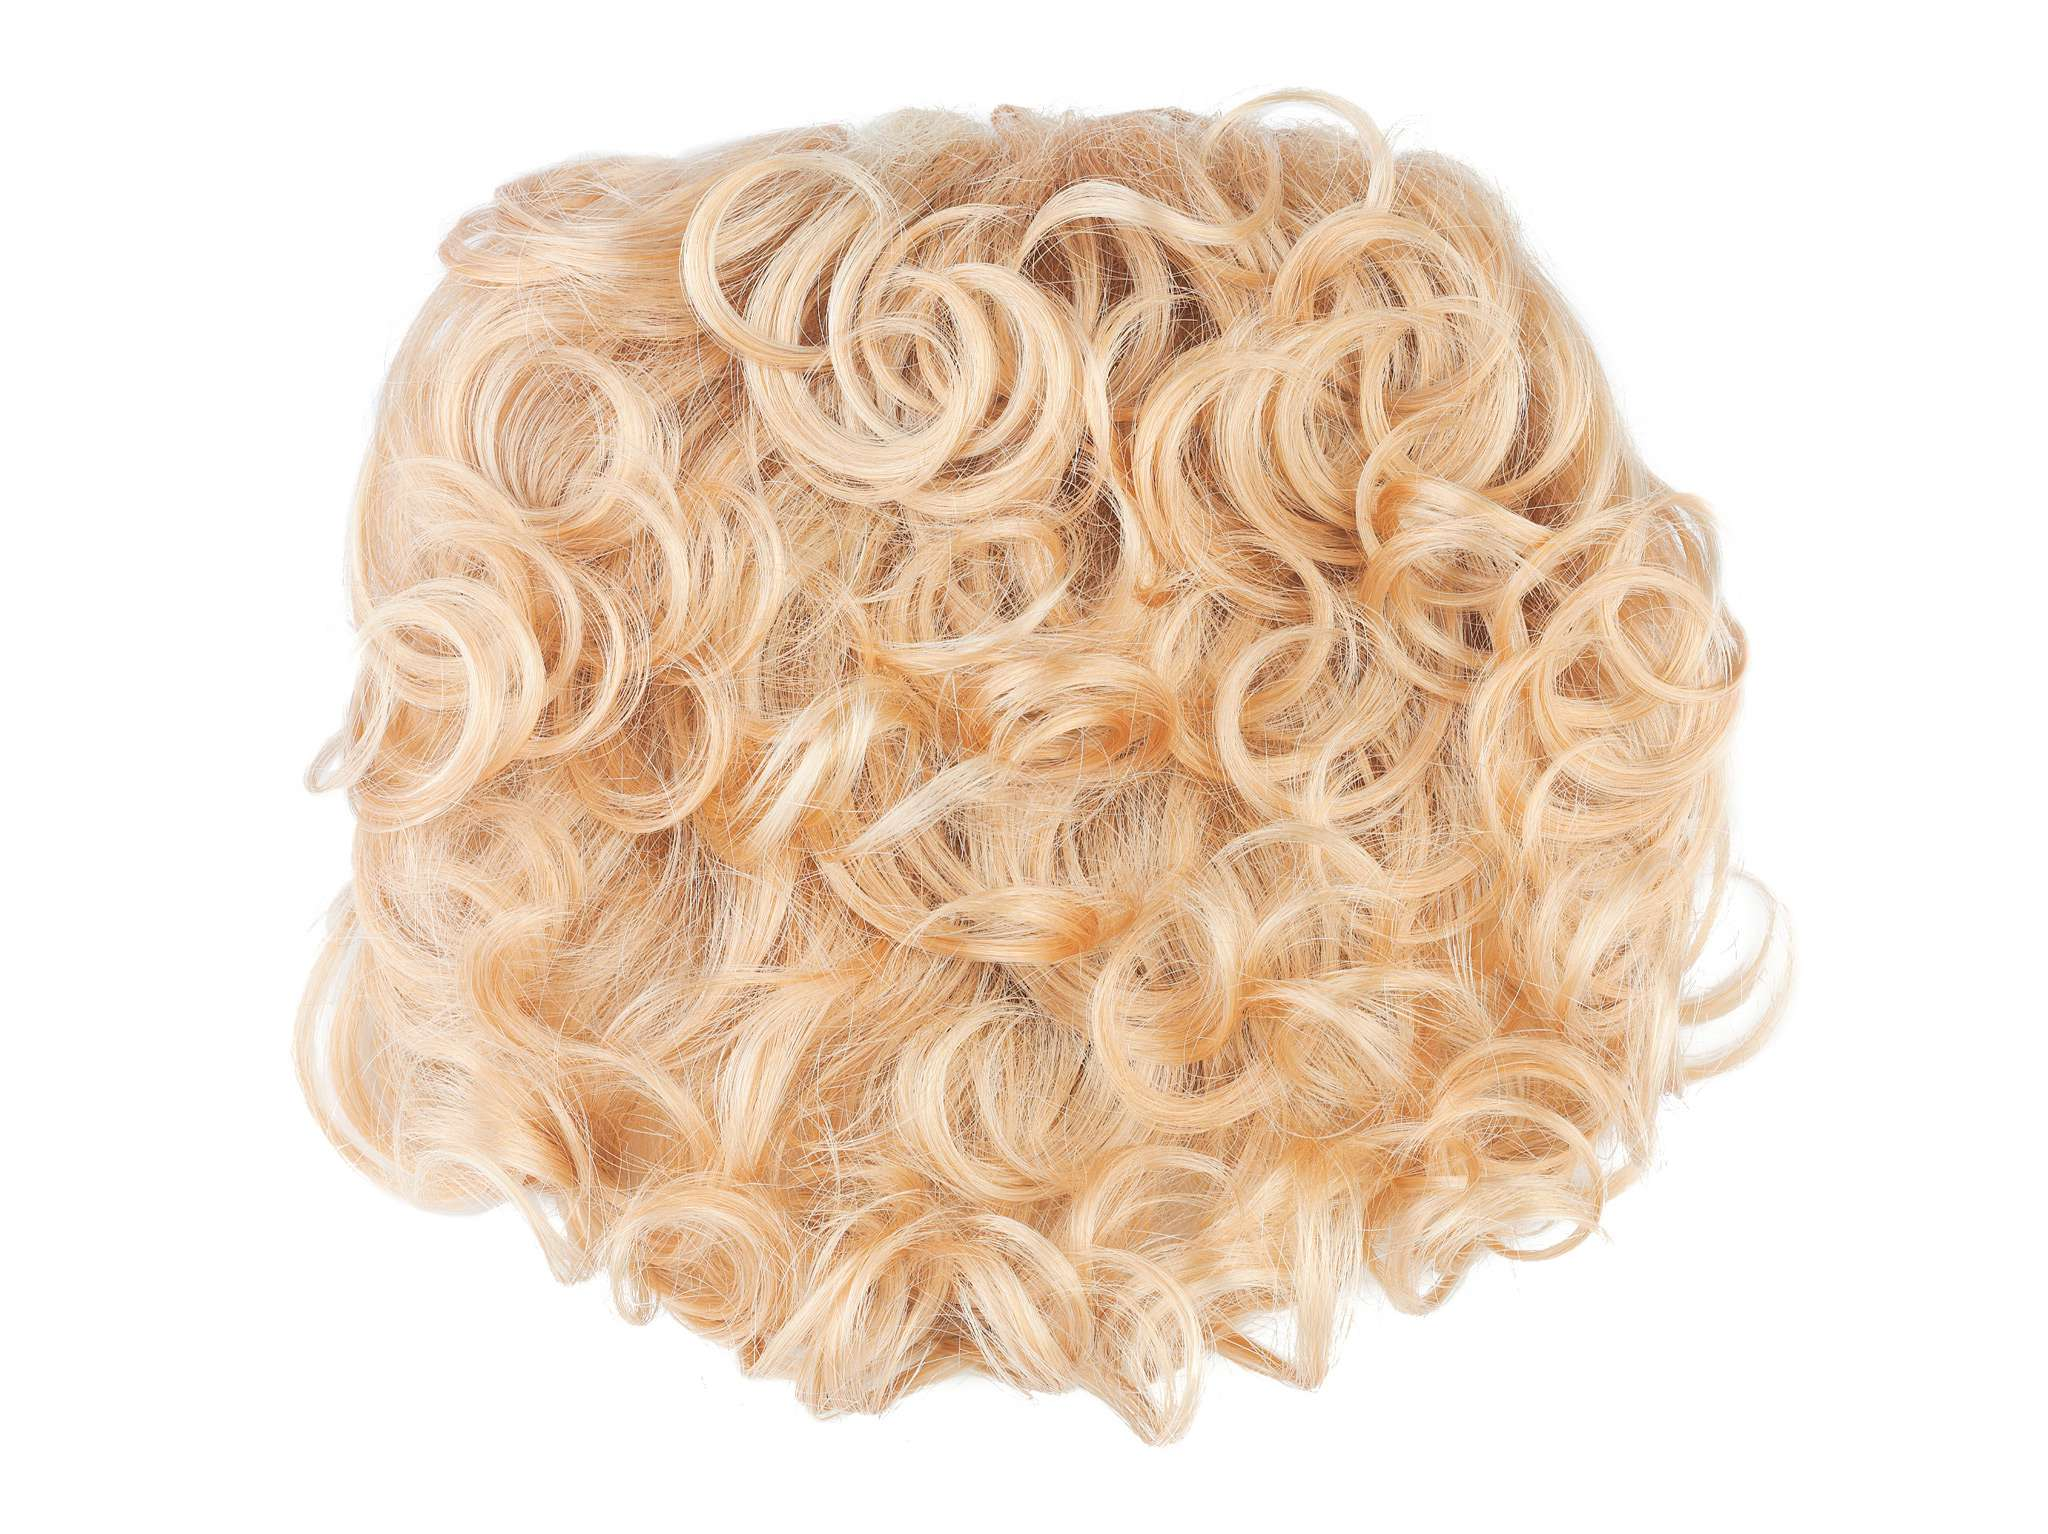 Hair Pieces For Women Top Pieces Hair Add Ons Wiglets